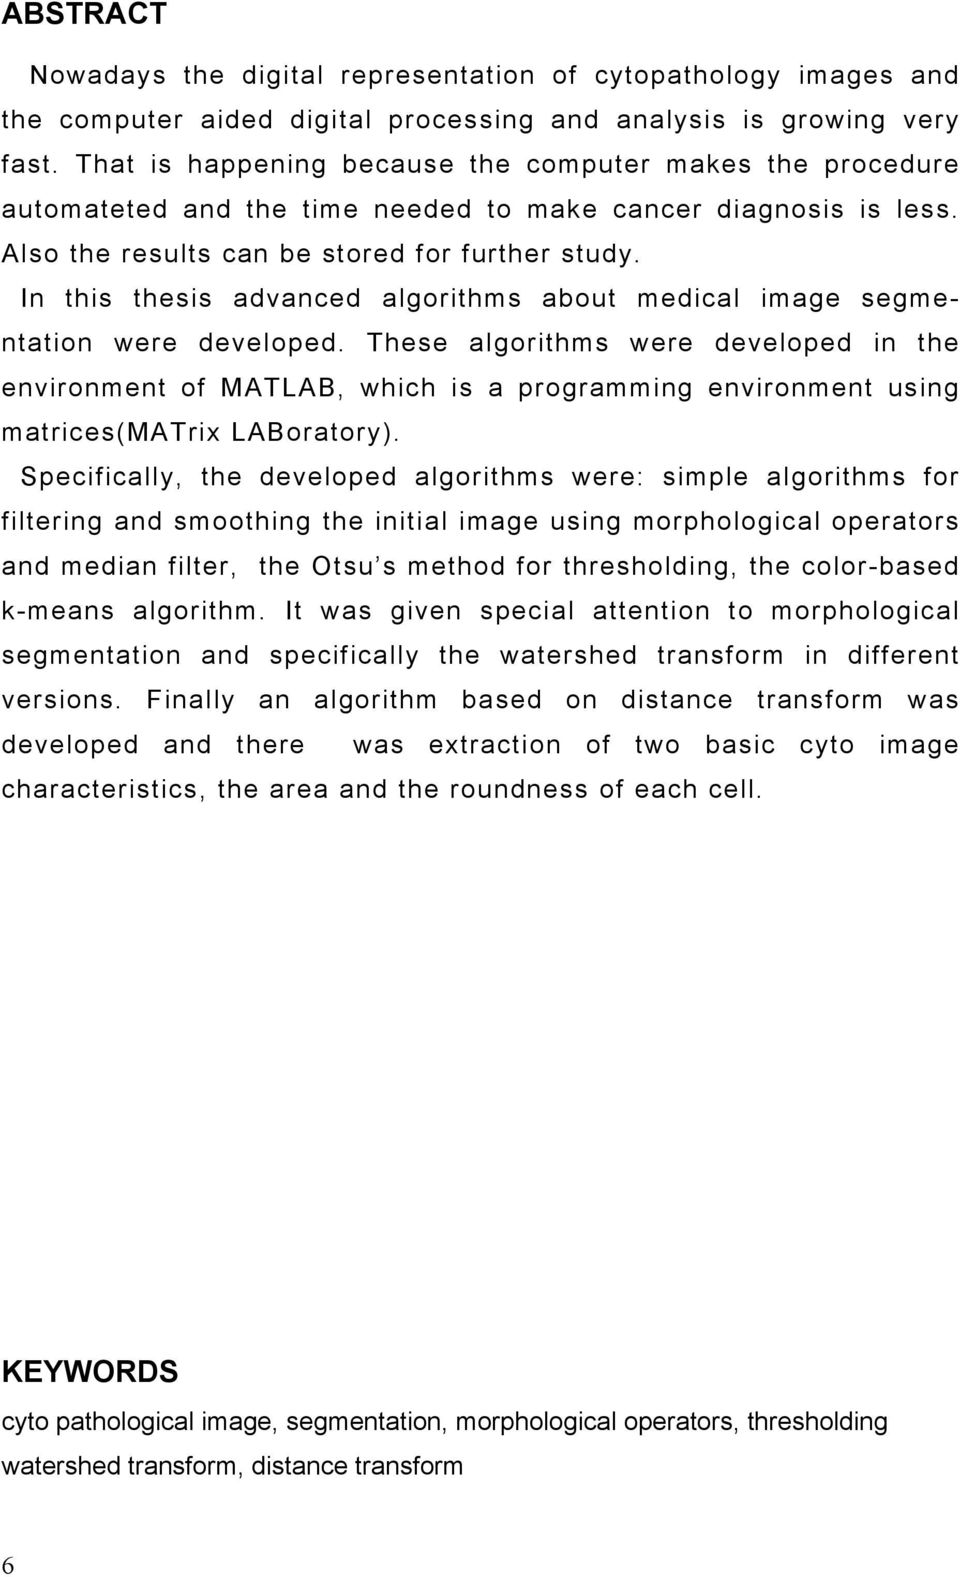 In this thesis advanced algorithms about medical image segmentation were developed.